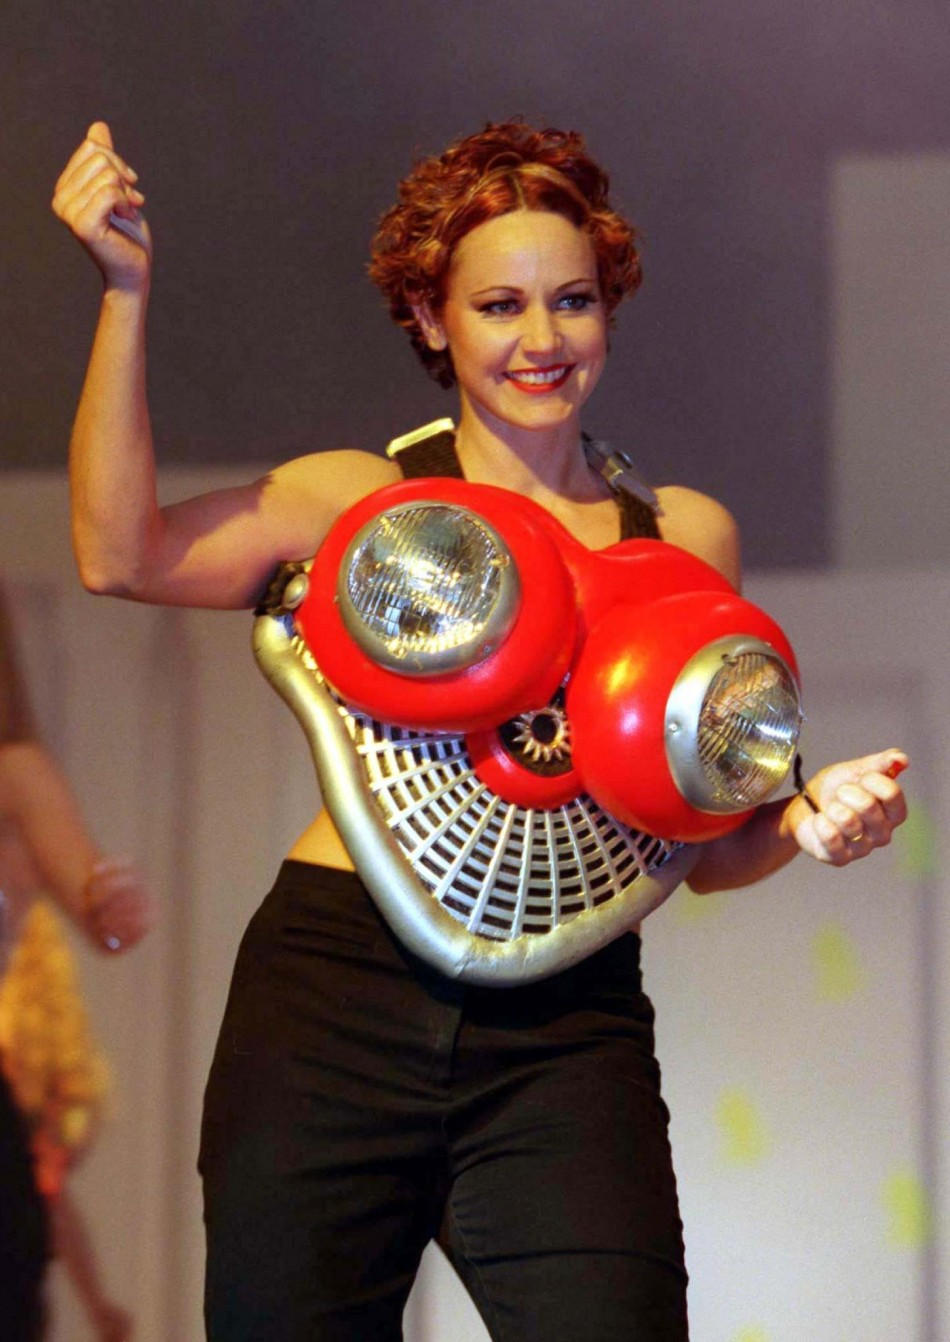 WEARABLE ART BRA AT SINGAPORE SHOW